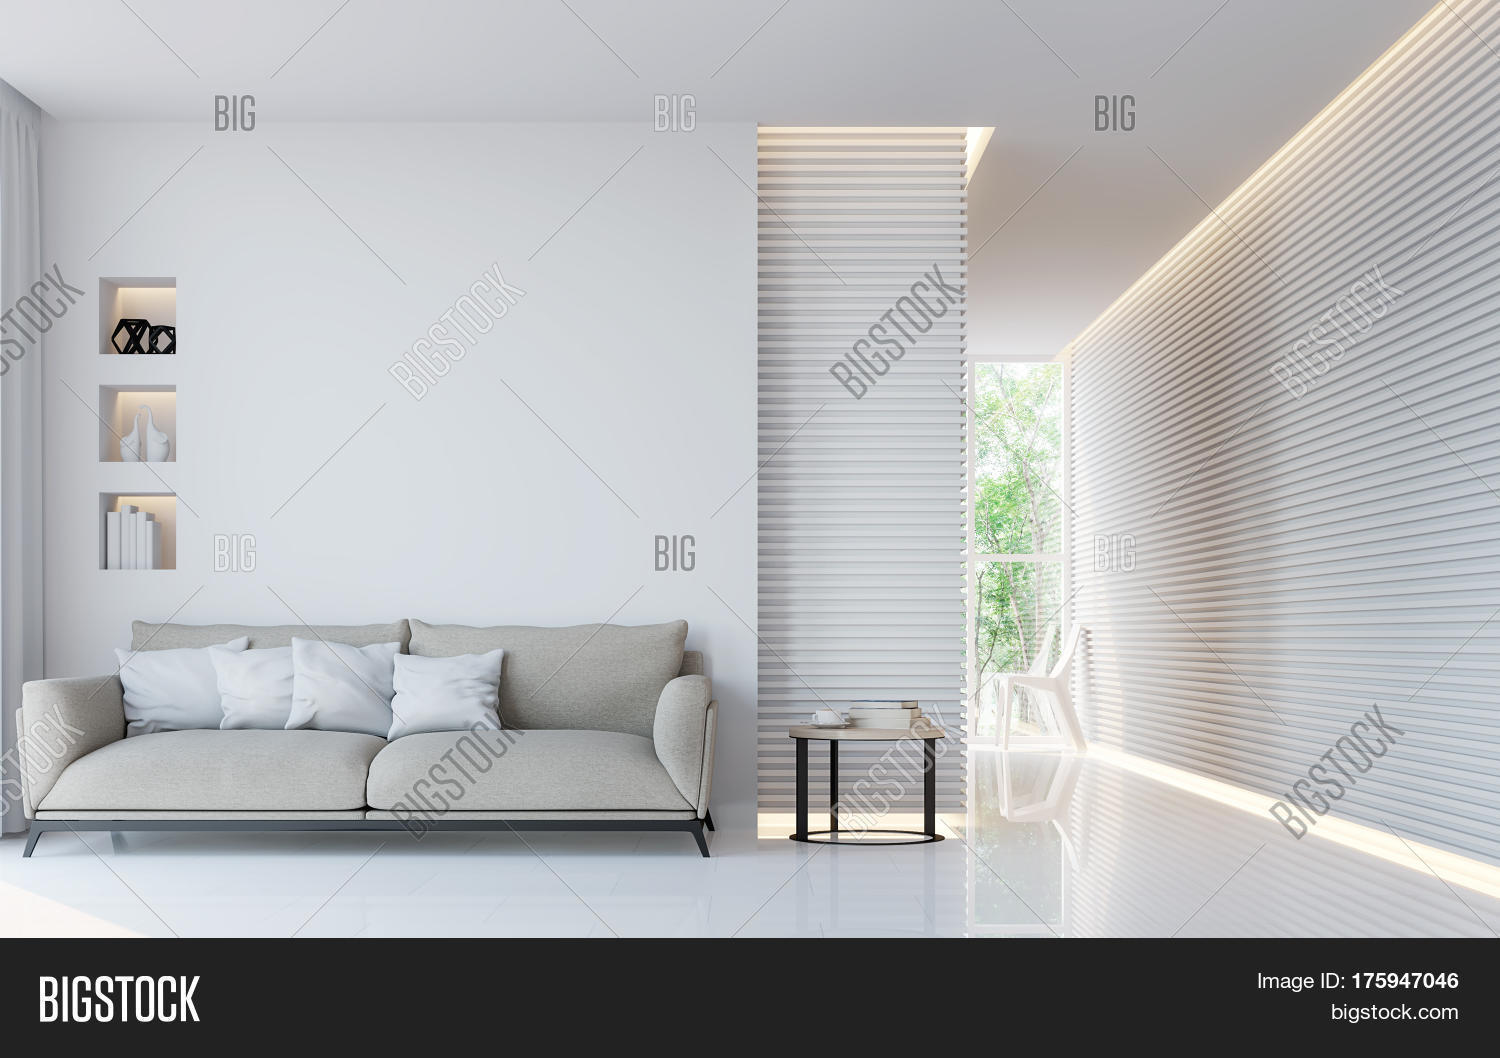 tv roses decorating furniture alsayed black lamp their upstairs magic visualizer and room ideas floor frames monochromatic rooms that ahmed table couches area accent coffee modern the scale red first grey monochrome living open white work